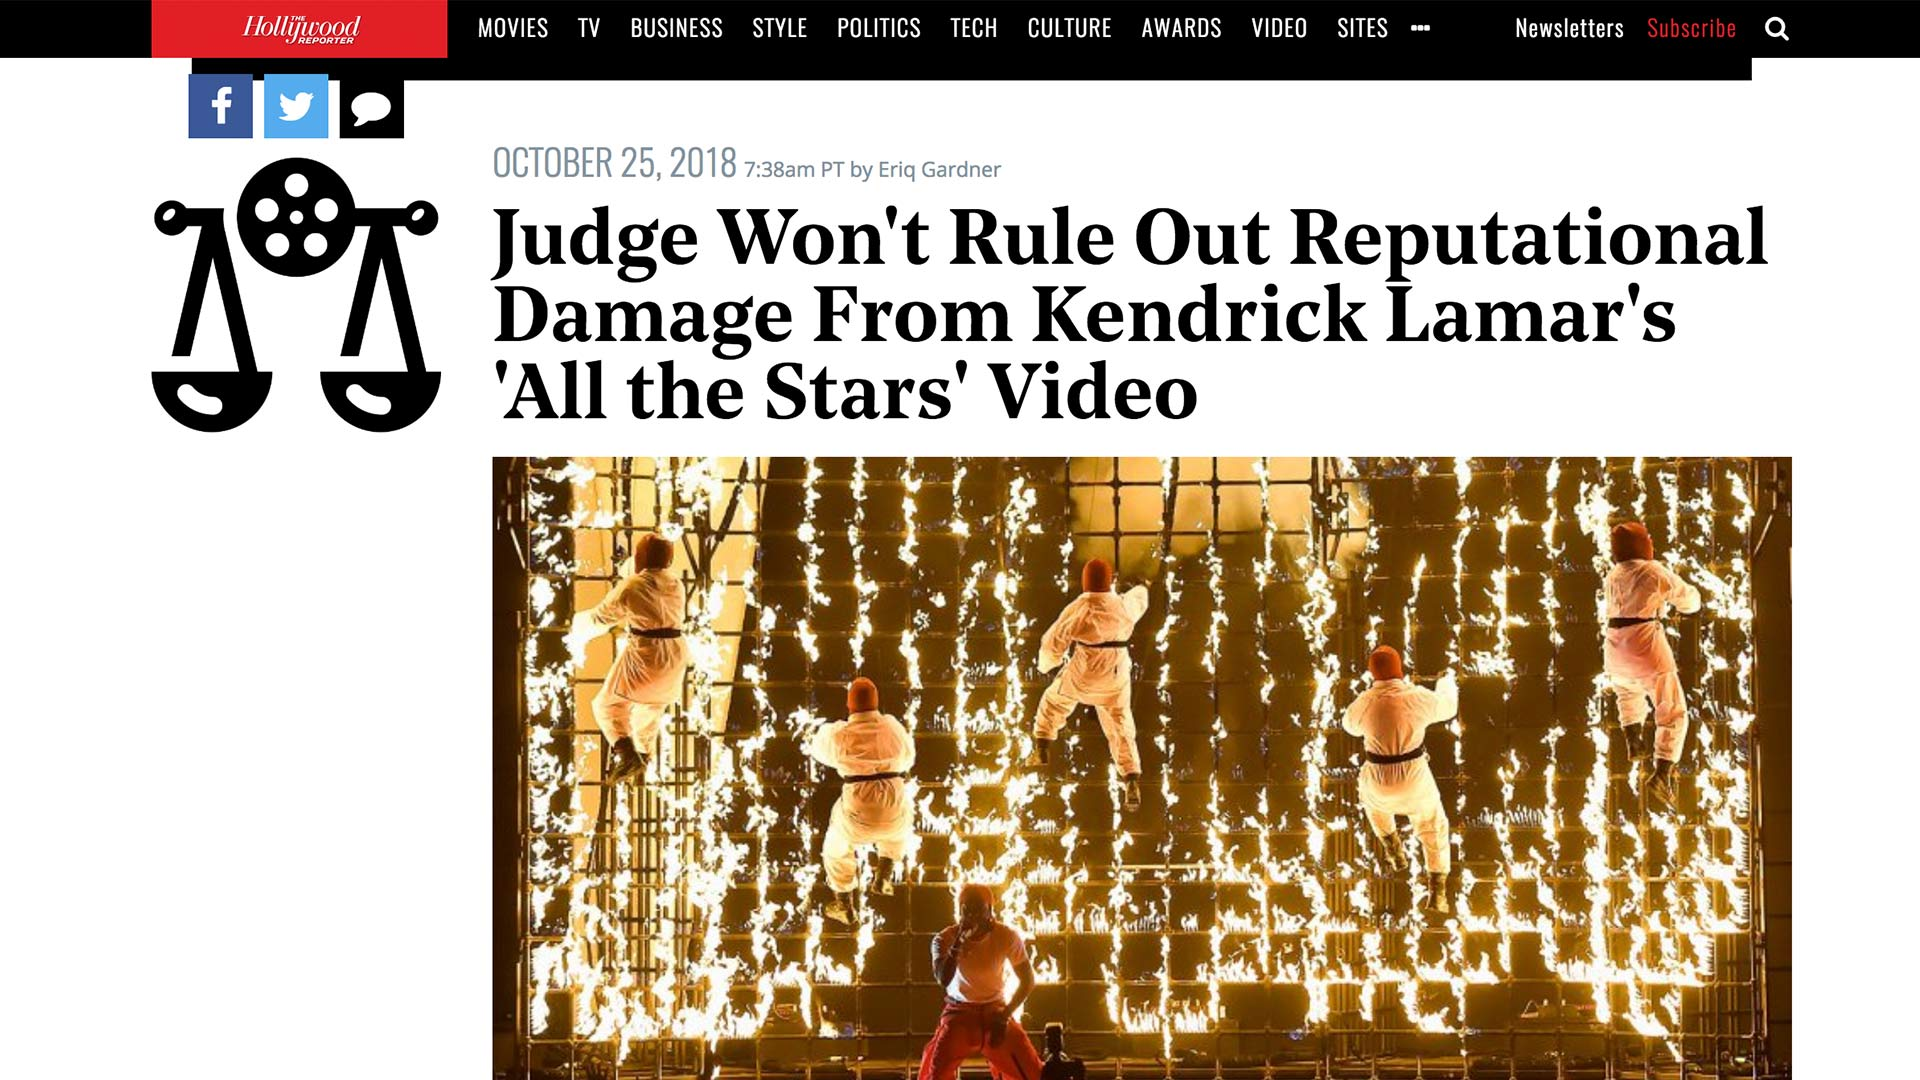 Fairness Rocks News Judge Won't Rule Out Reputational Damage From Kendrick Lamar's 'All the Stars' Video